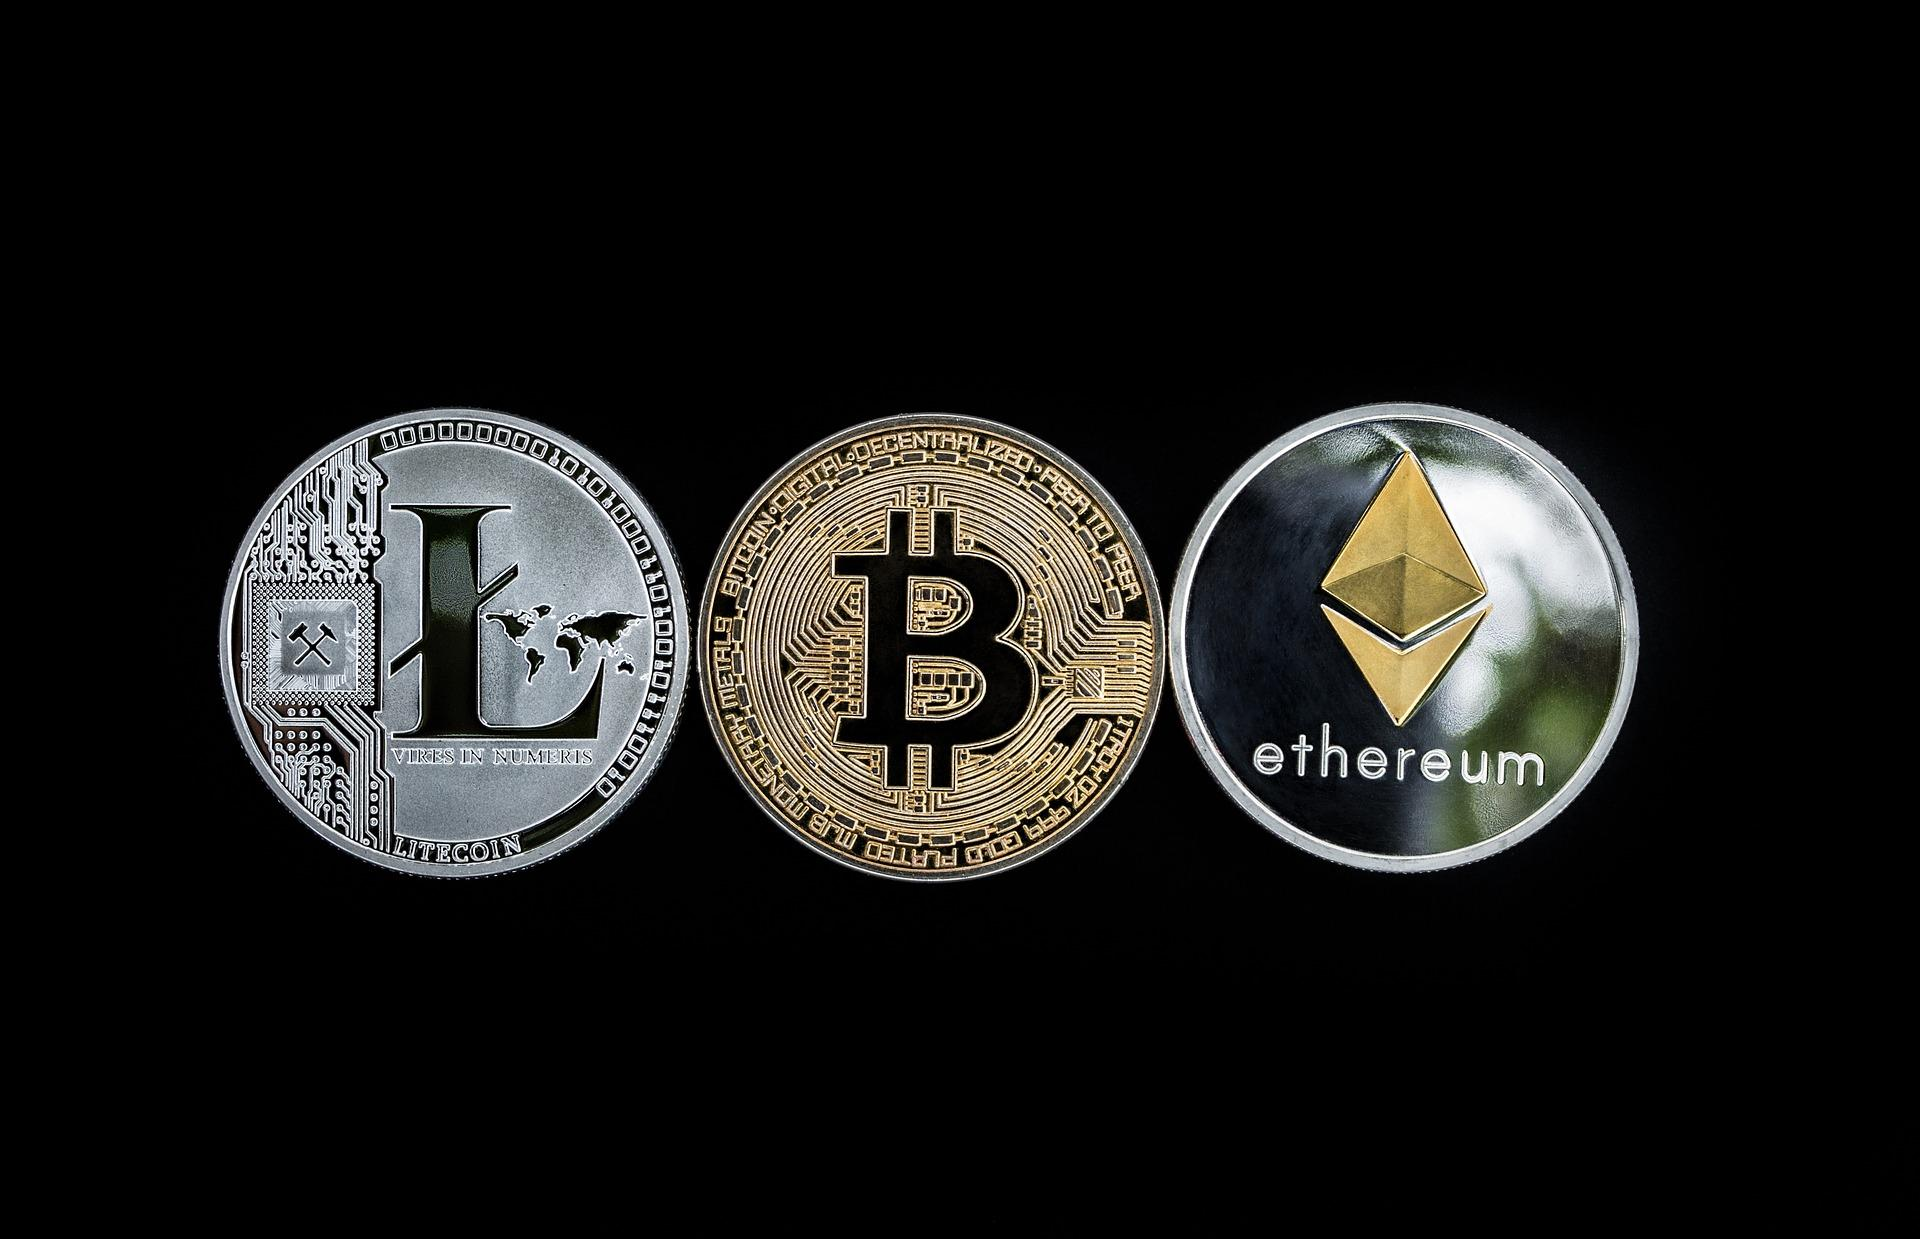 Litecoin, Bitcoin, and Ethereum tokens